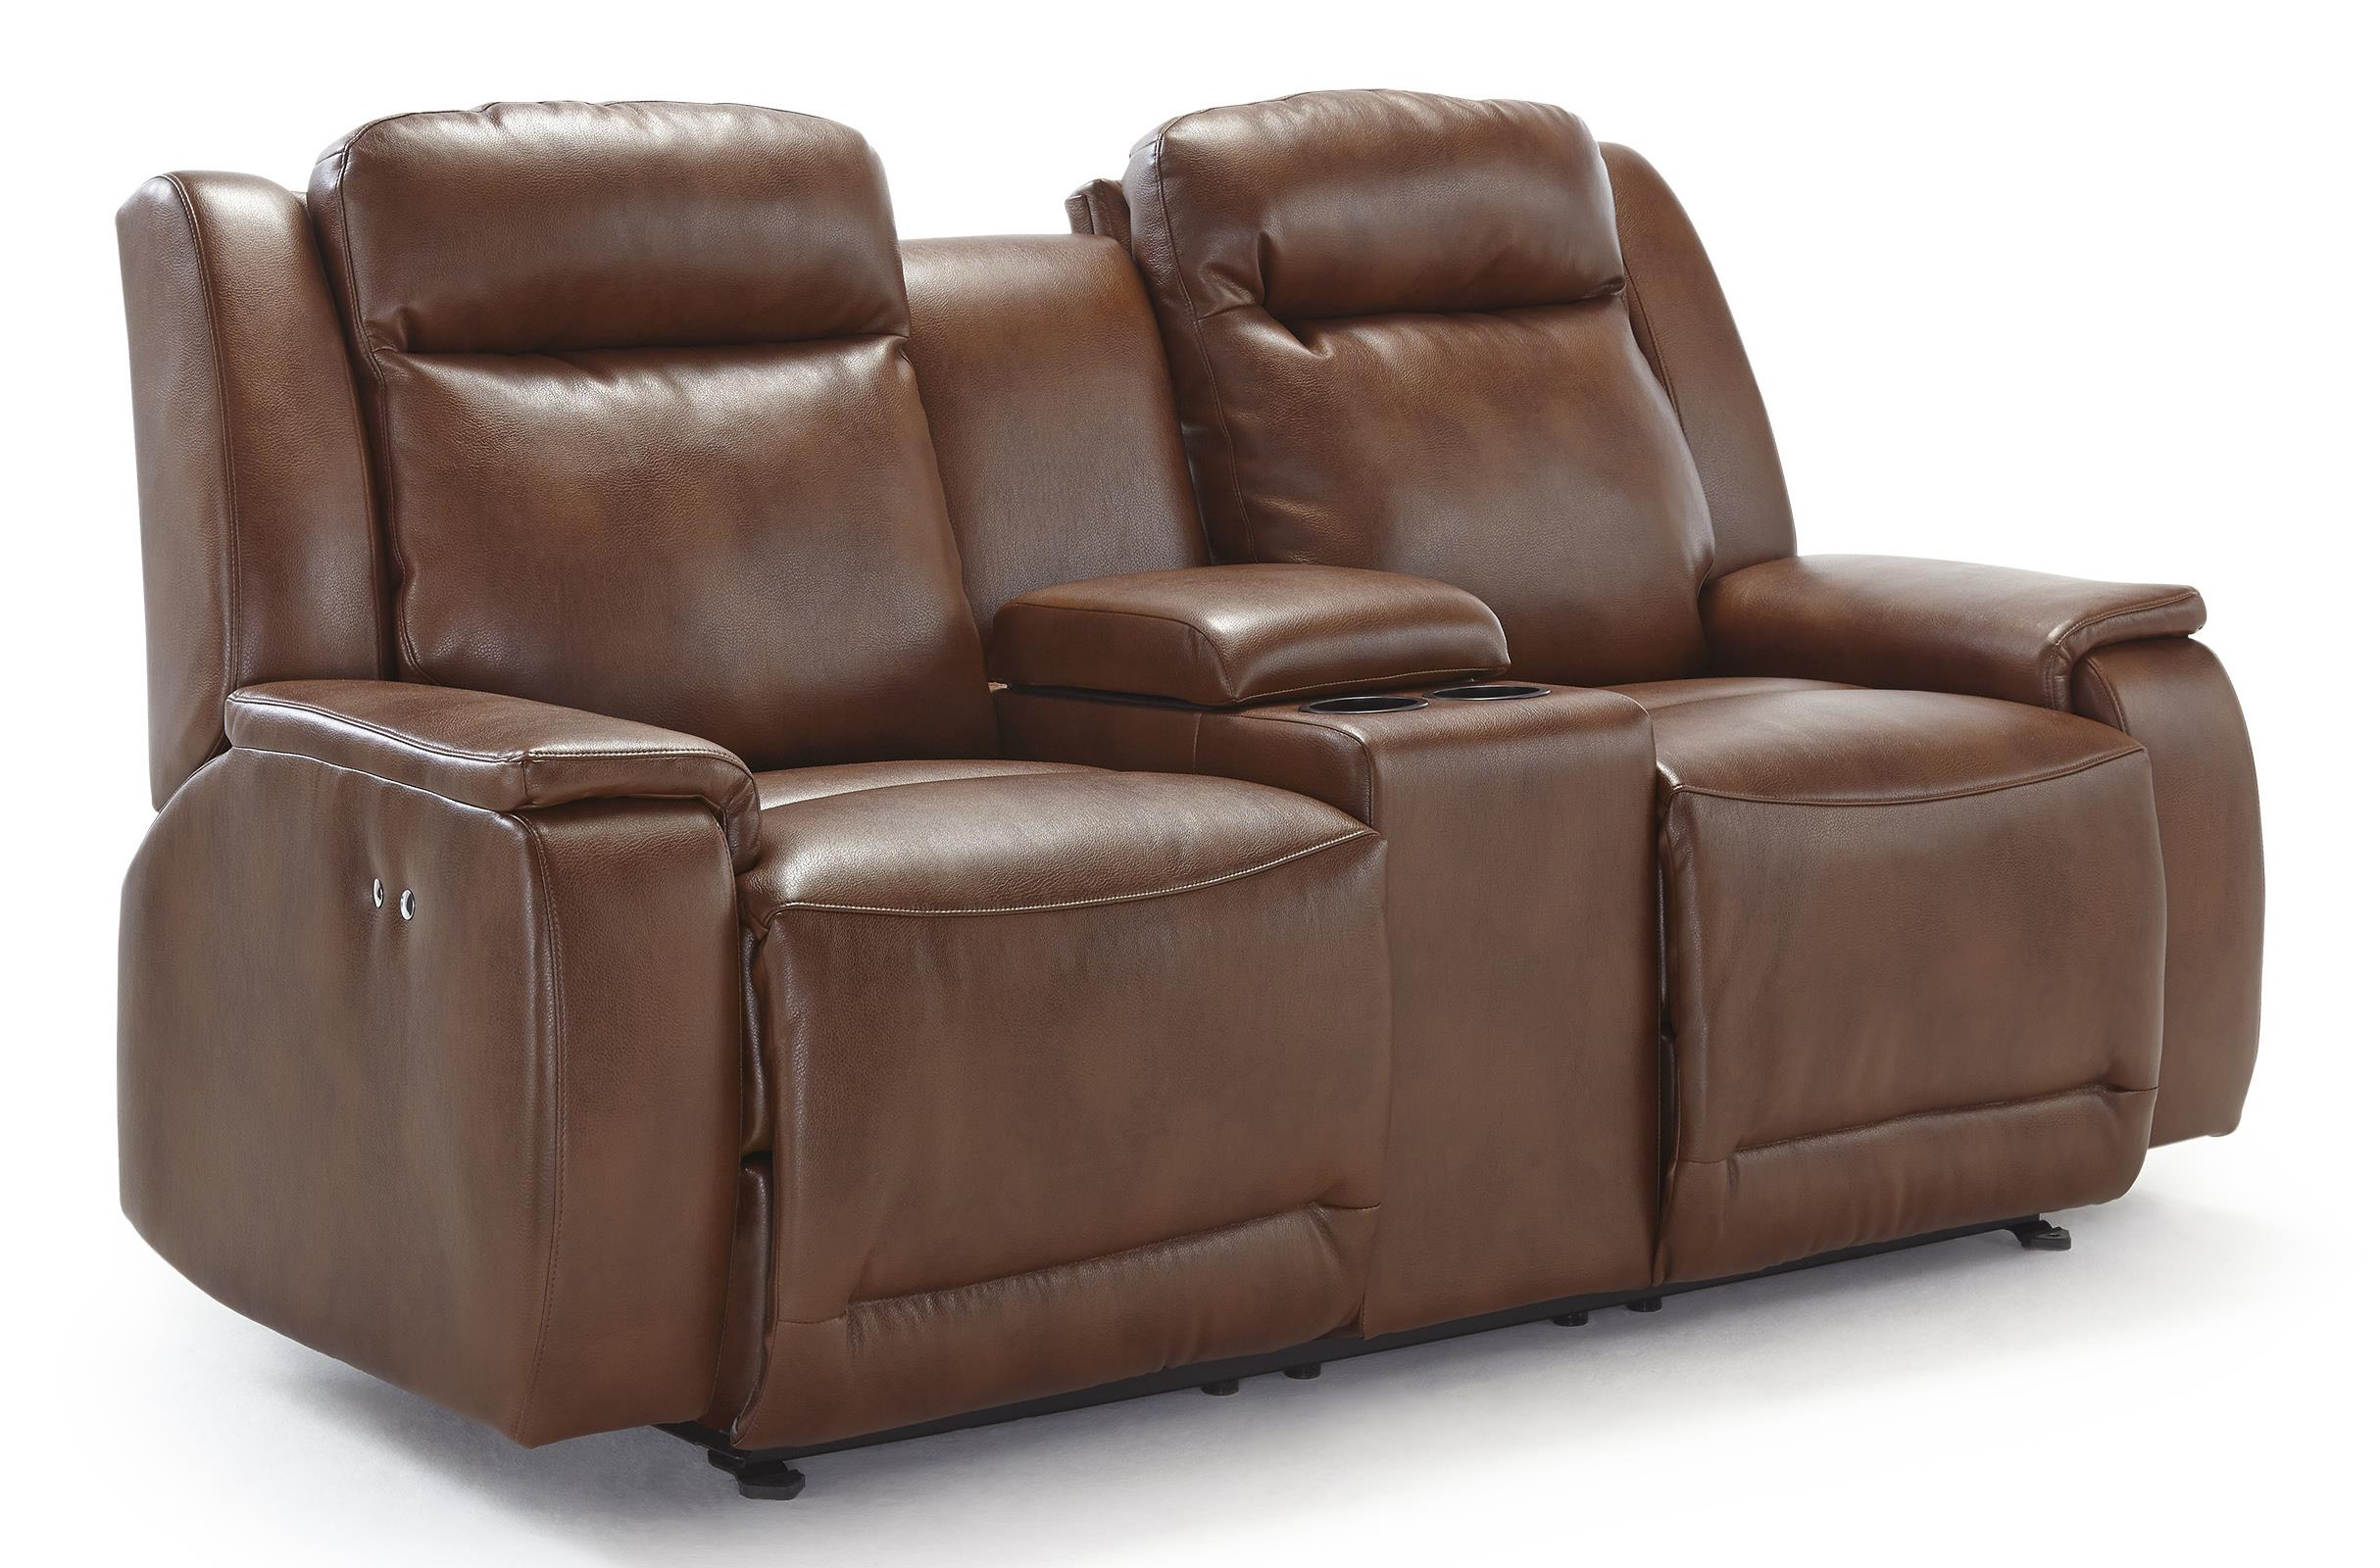 Best Home Furnishings Hardisty Space Saver Reclining Loveseat w/ Console - Item Number: L680RC4U-26764U